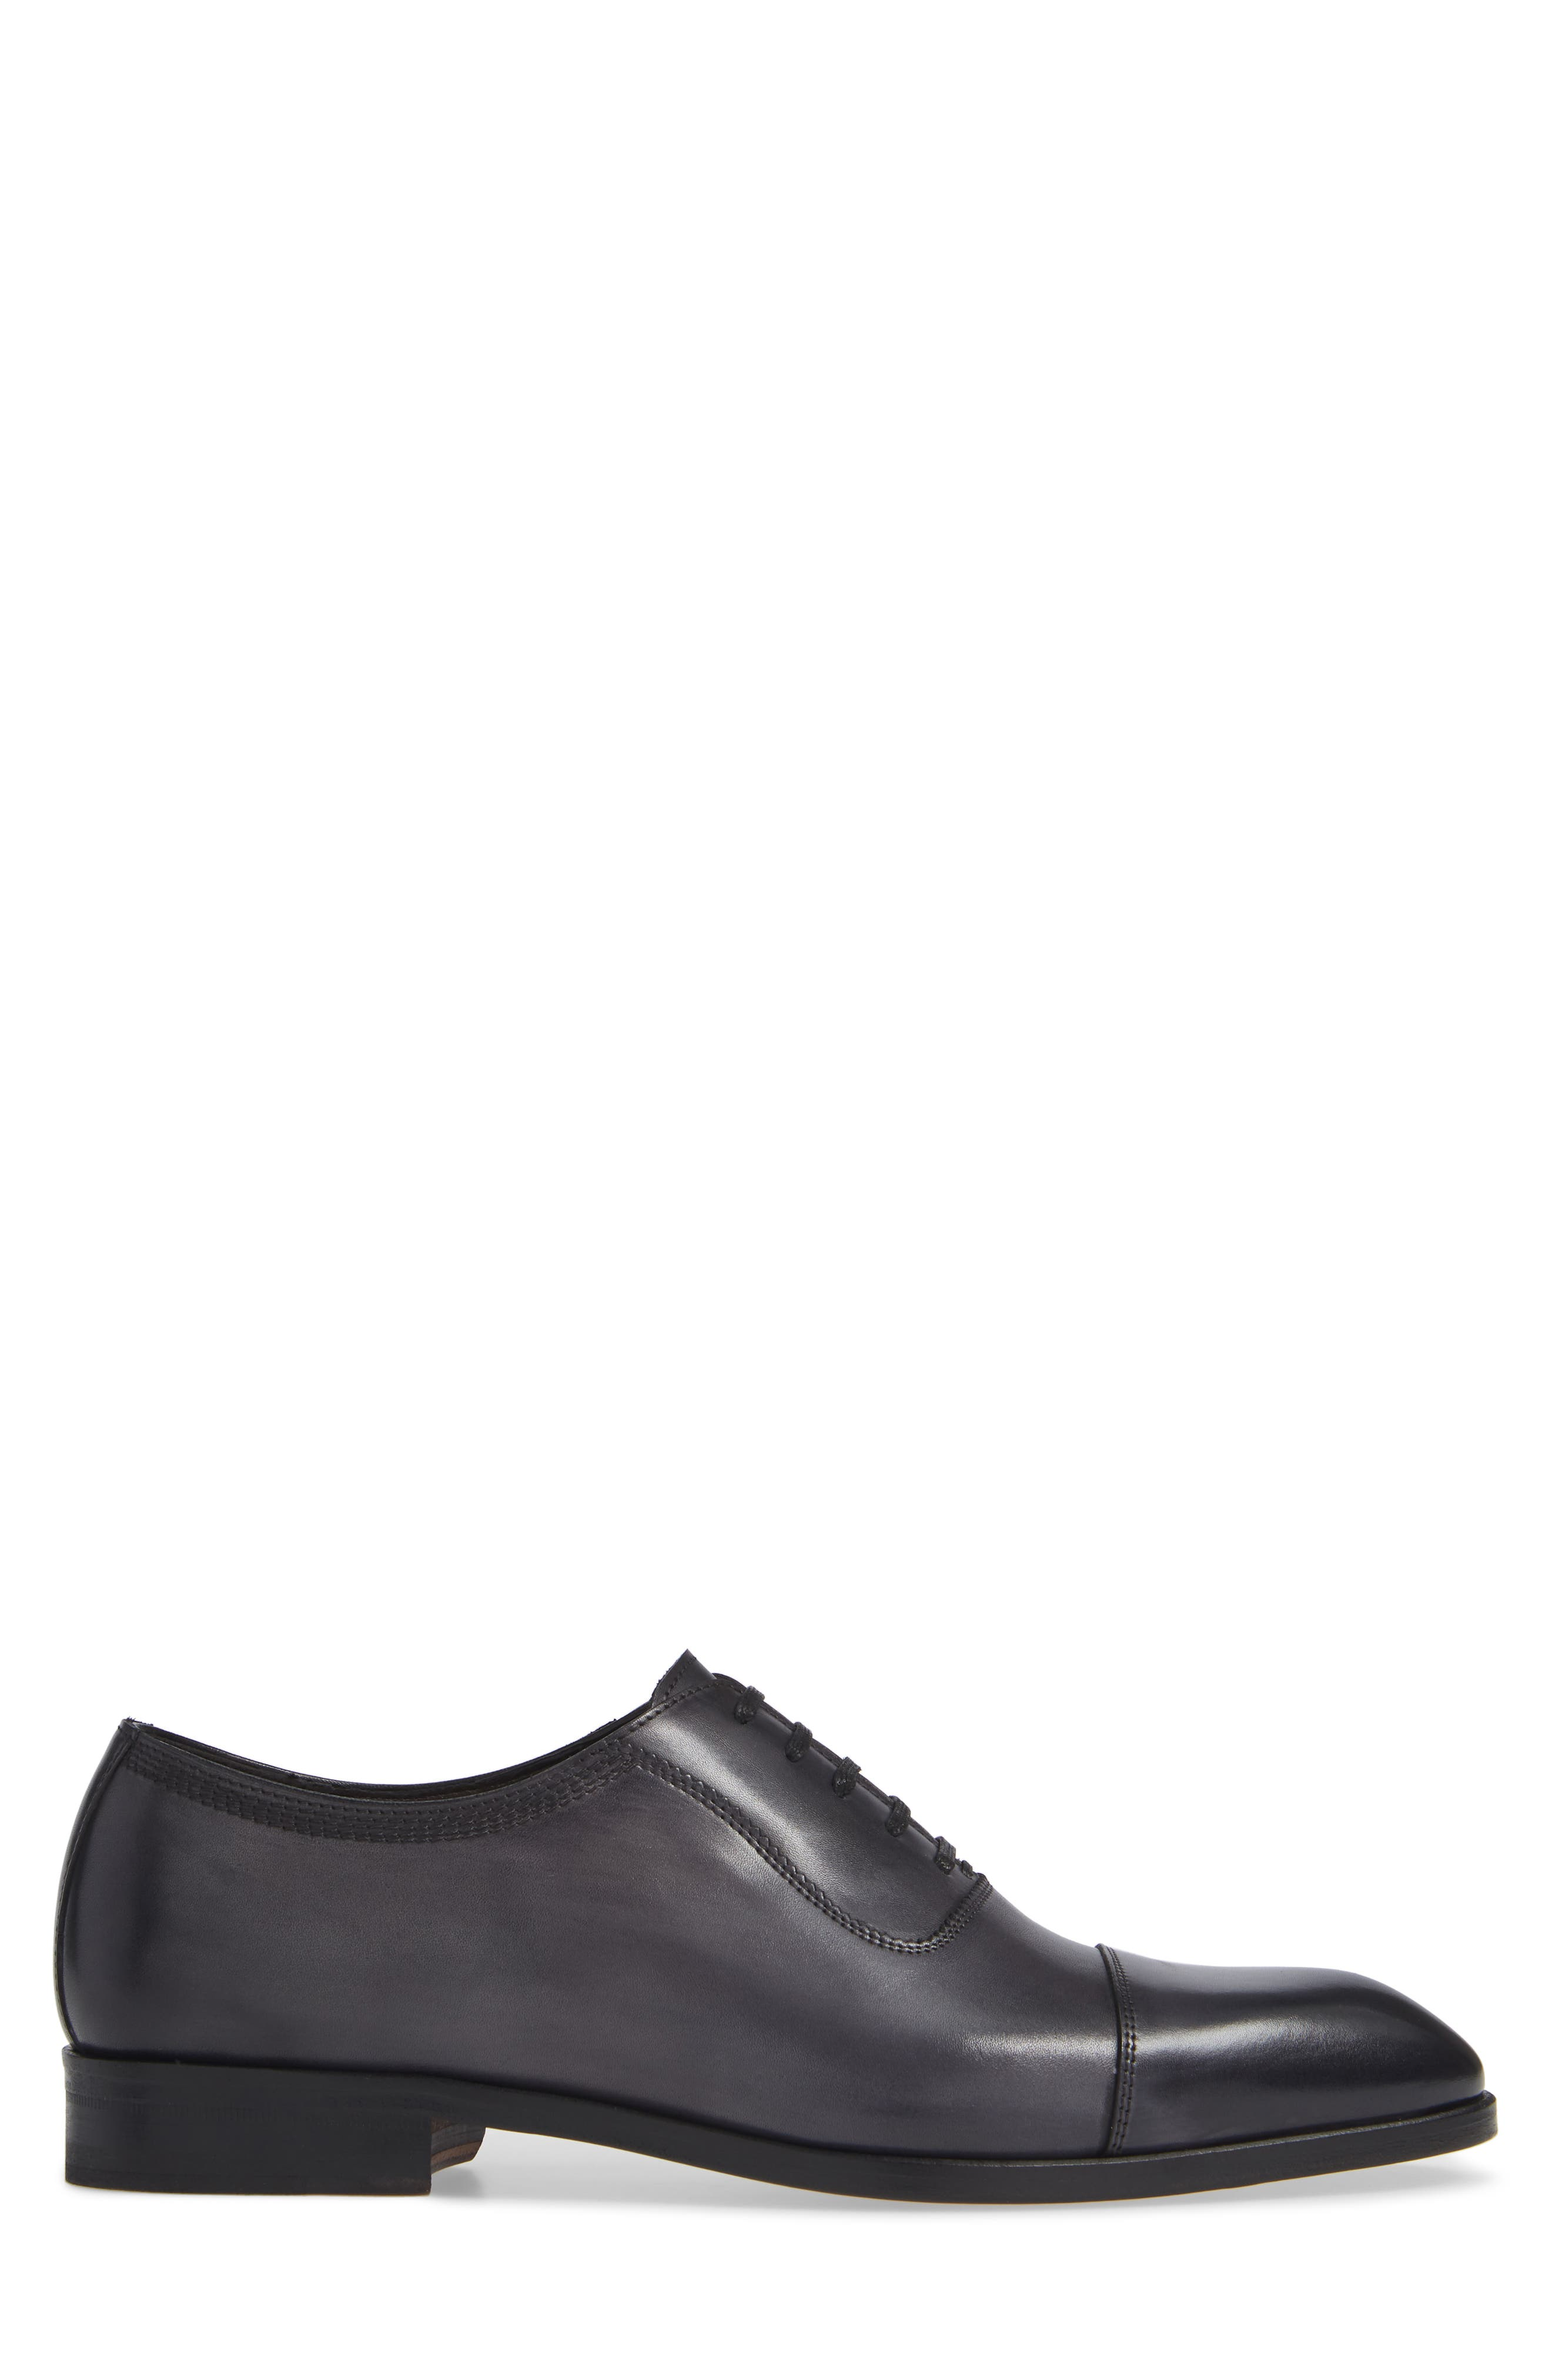 Lucerne Cap Toe Oxford,                             Alternate thumbnail 3, color,                             GREY LEATHER